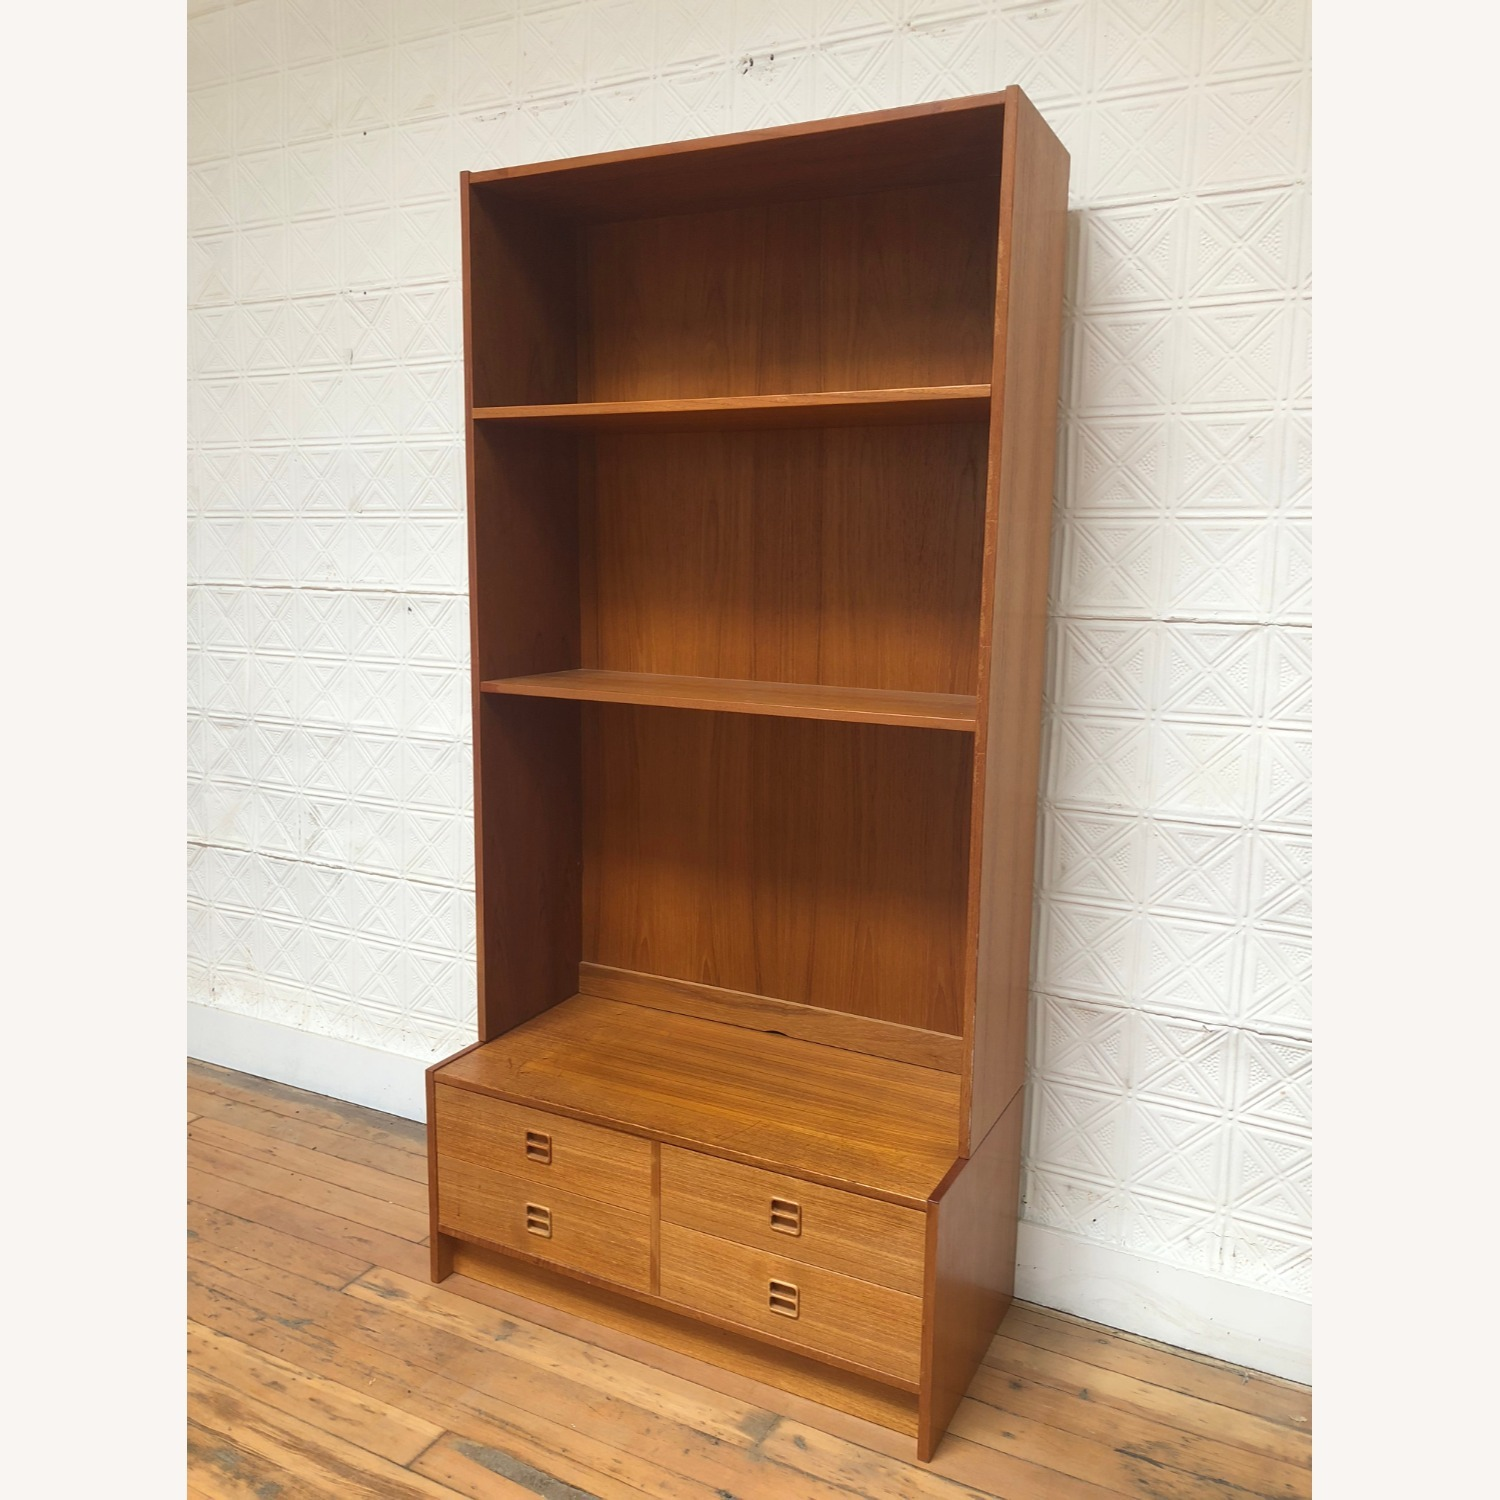 Danish Modern Shelving Unit with Four Drawers - image-3